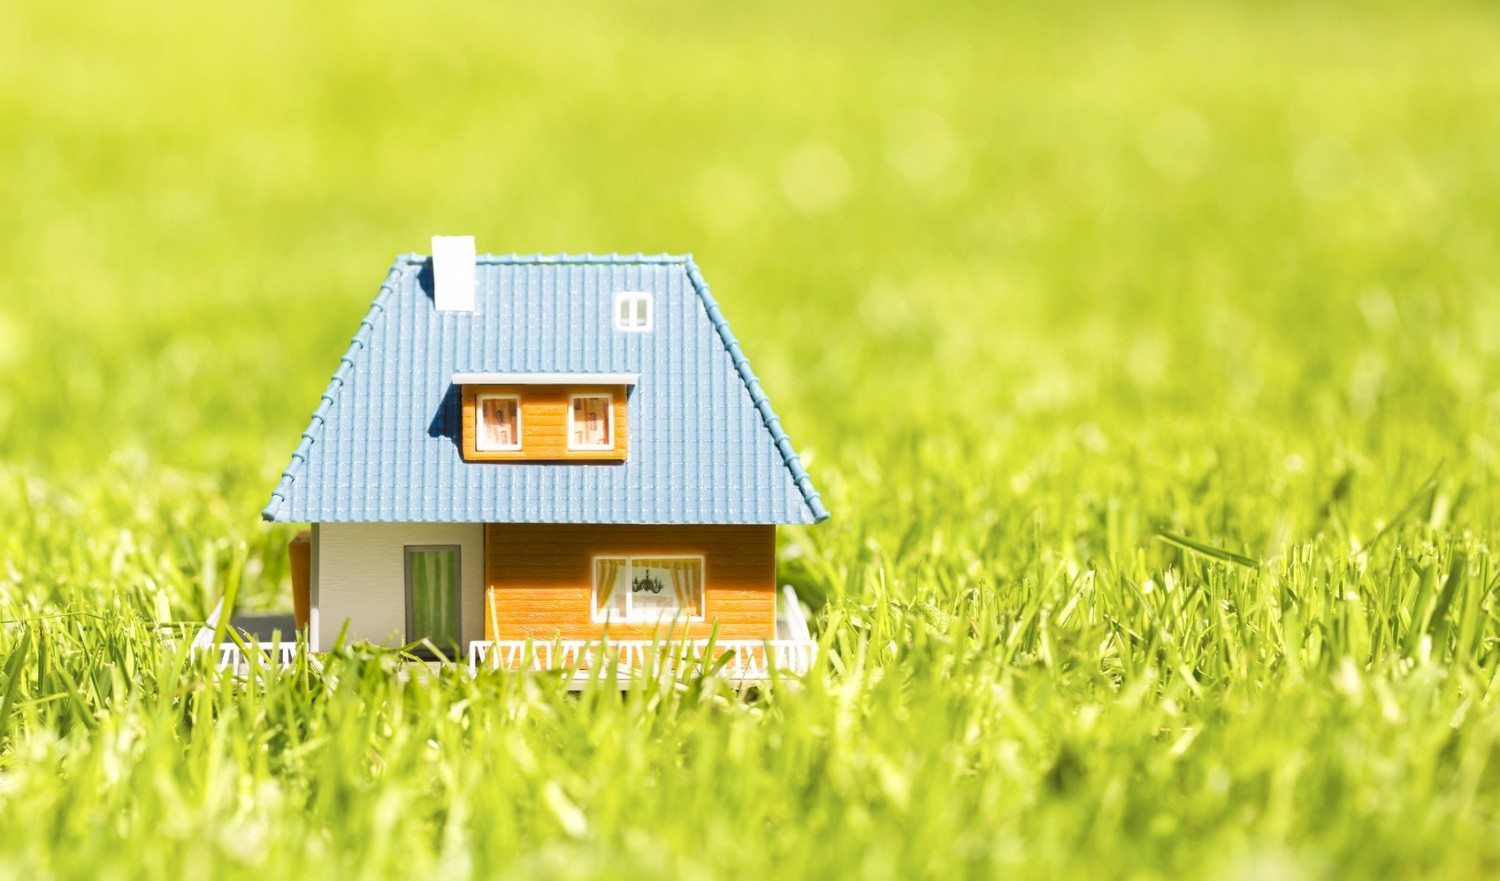 plastic house scale model on green grass with copy space